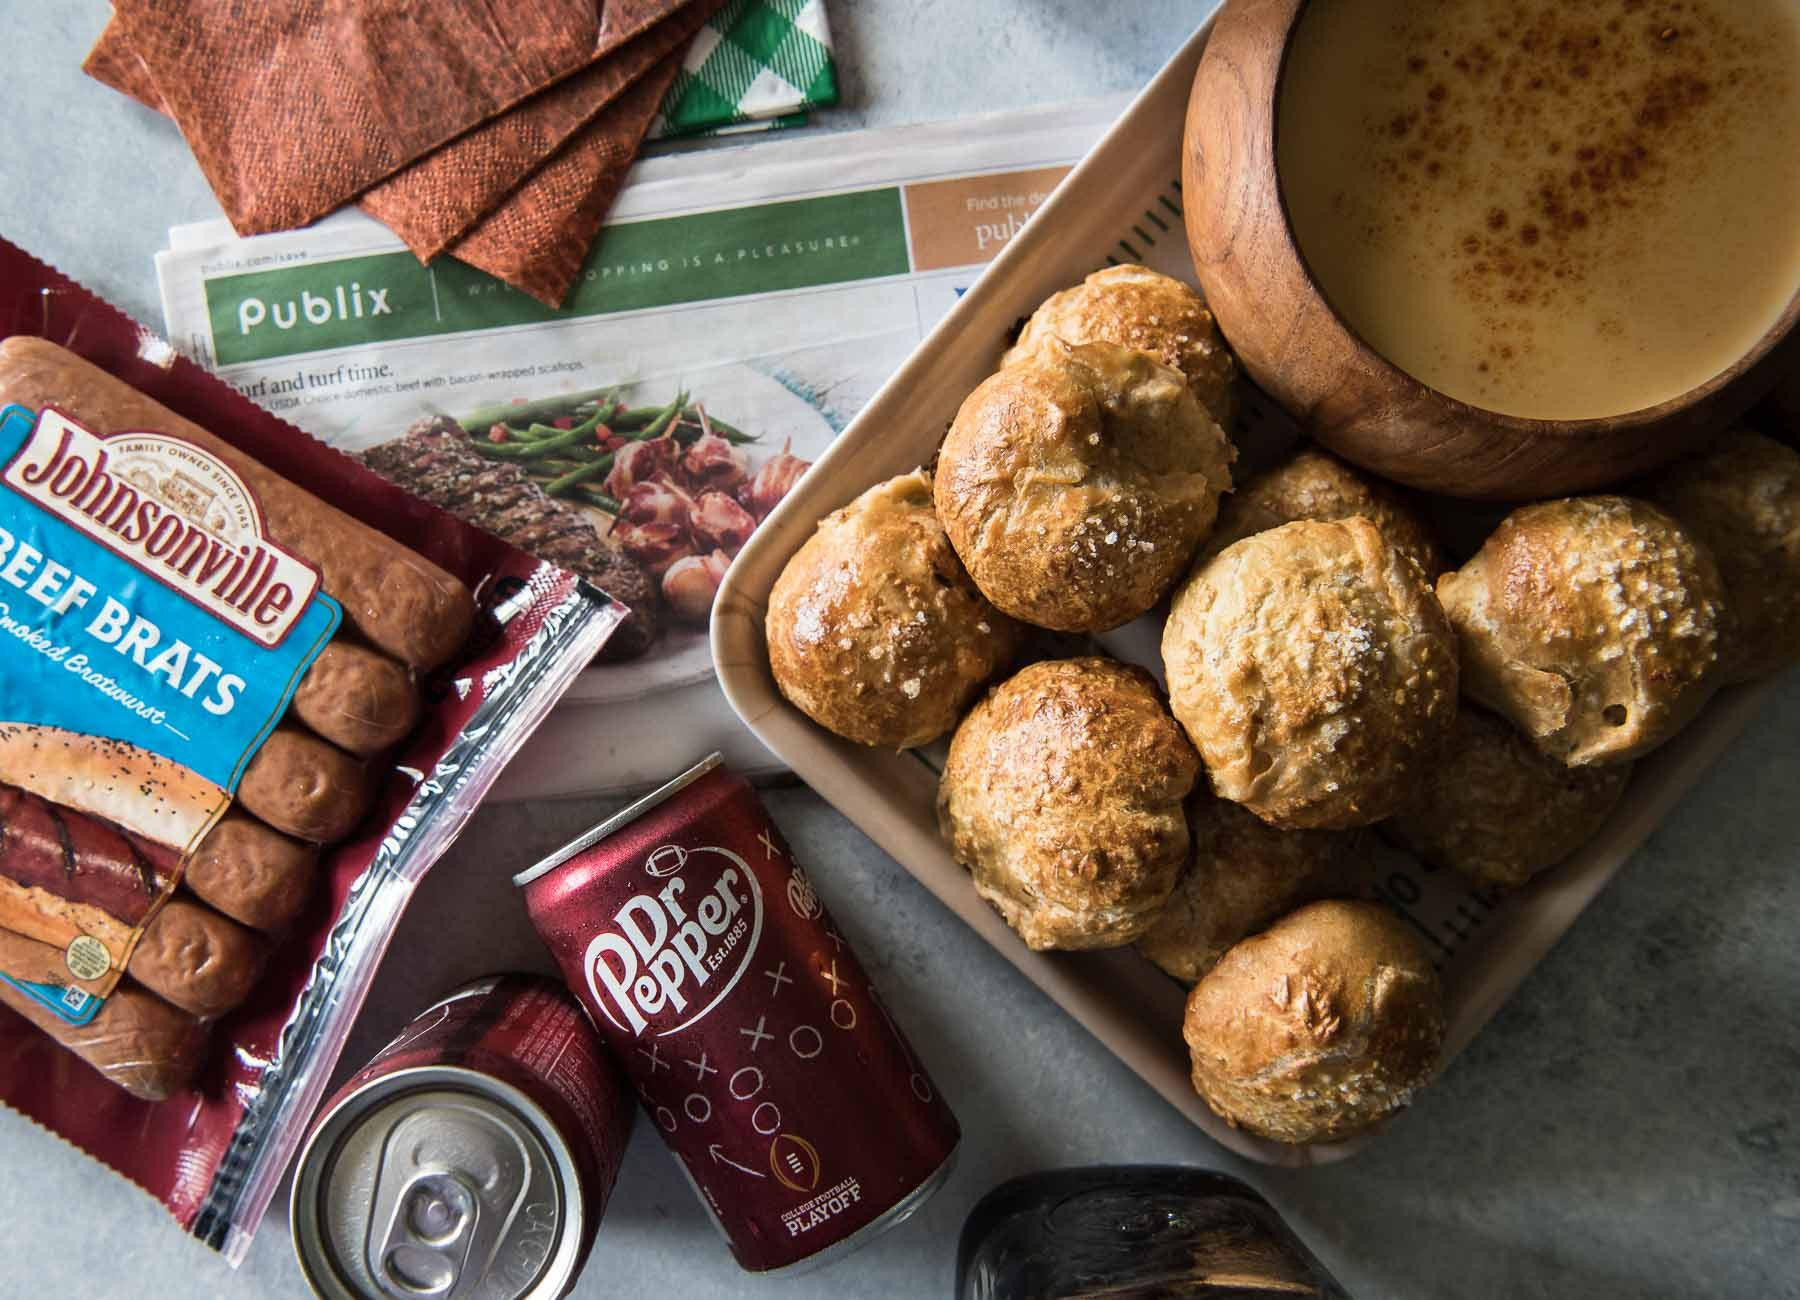 Sweet-Spicy-Bratwurst-Pretzel-Bombs-with-Beer-Cheese-Dip-4-of-6-1800x1300 (1).jpg